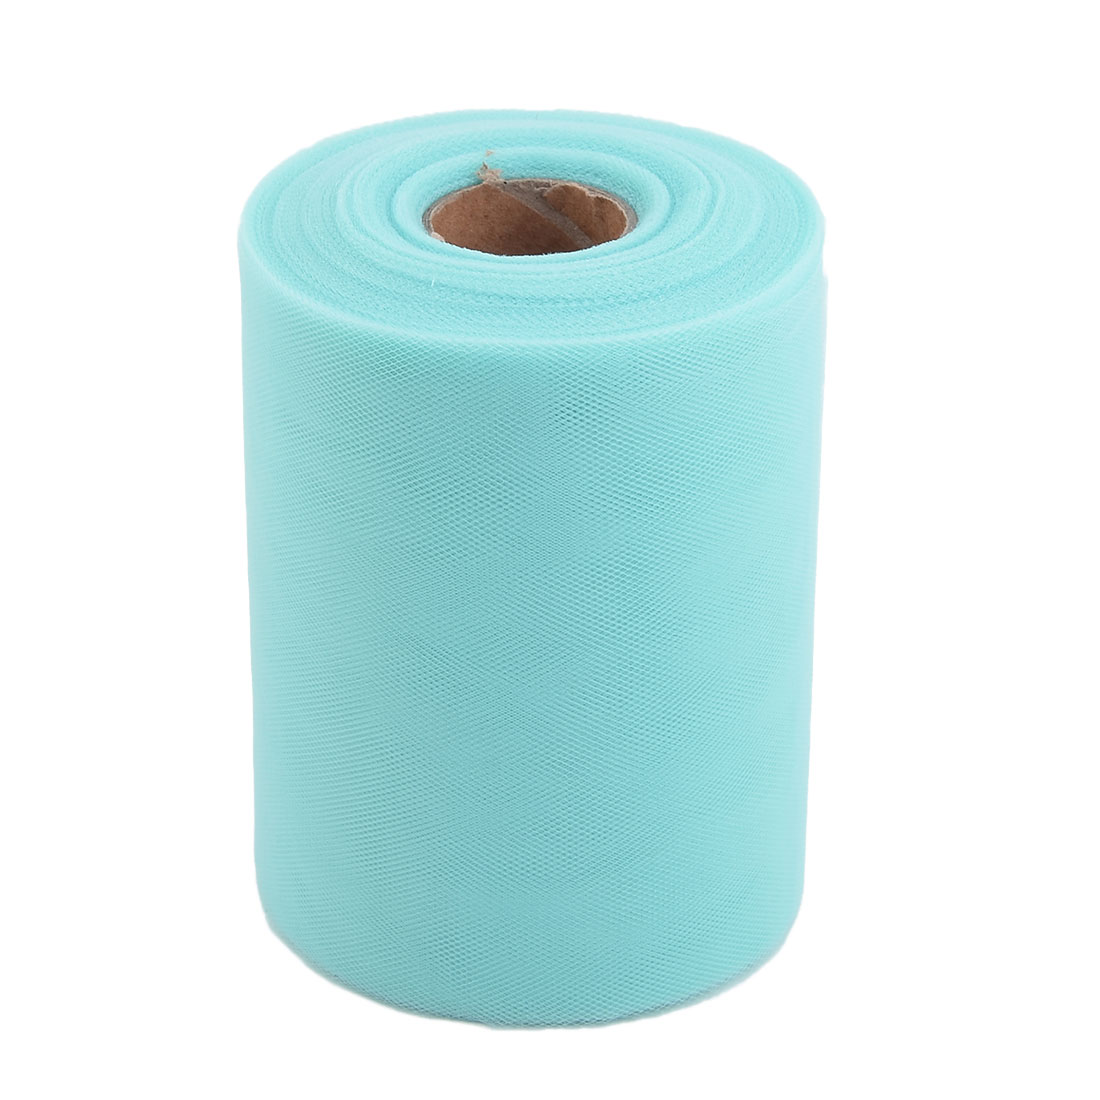 Feast Polyester DIY Tutu Notebook Decor Tulle Spool Roll Turquoise 6 Inch x 100 Yards